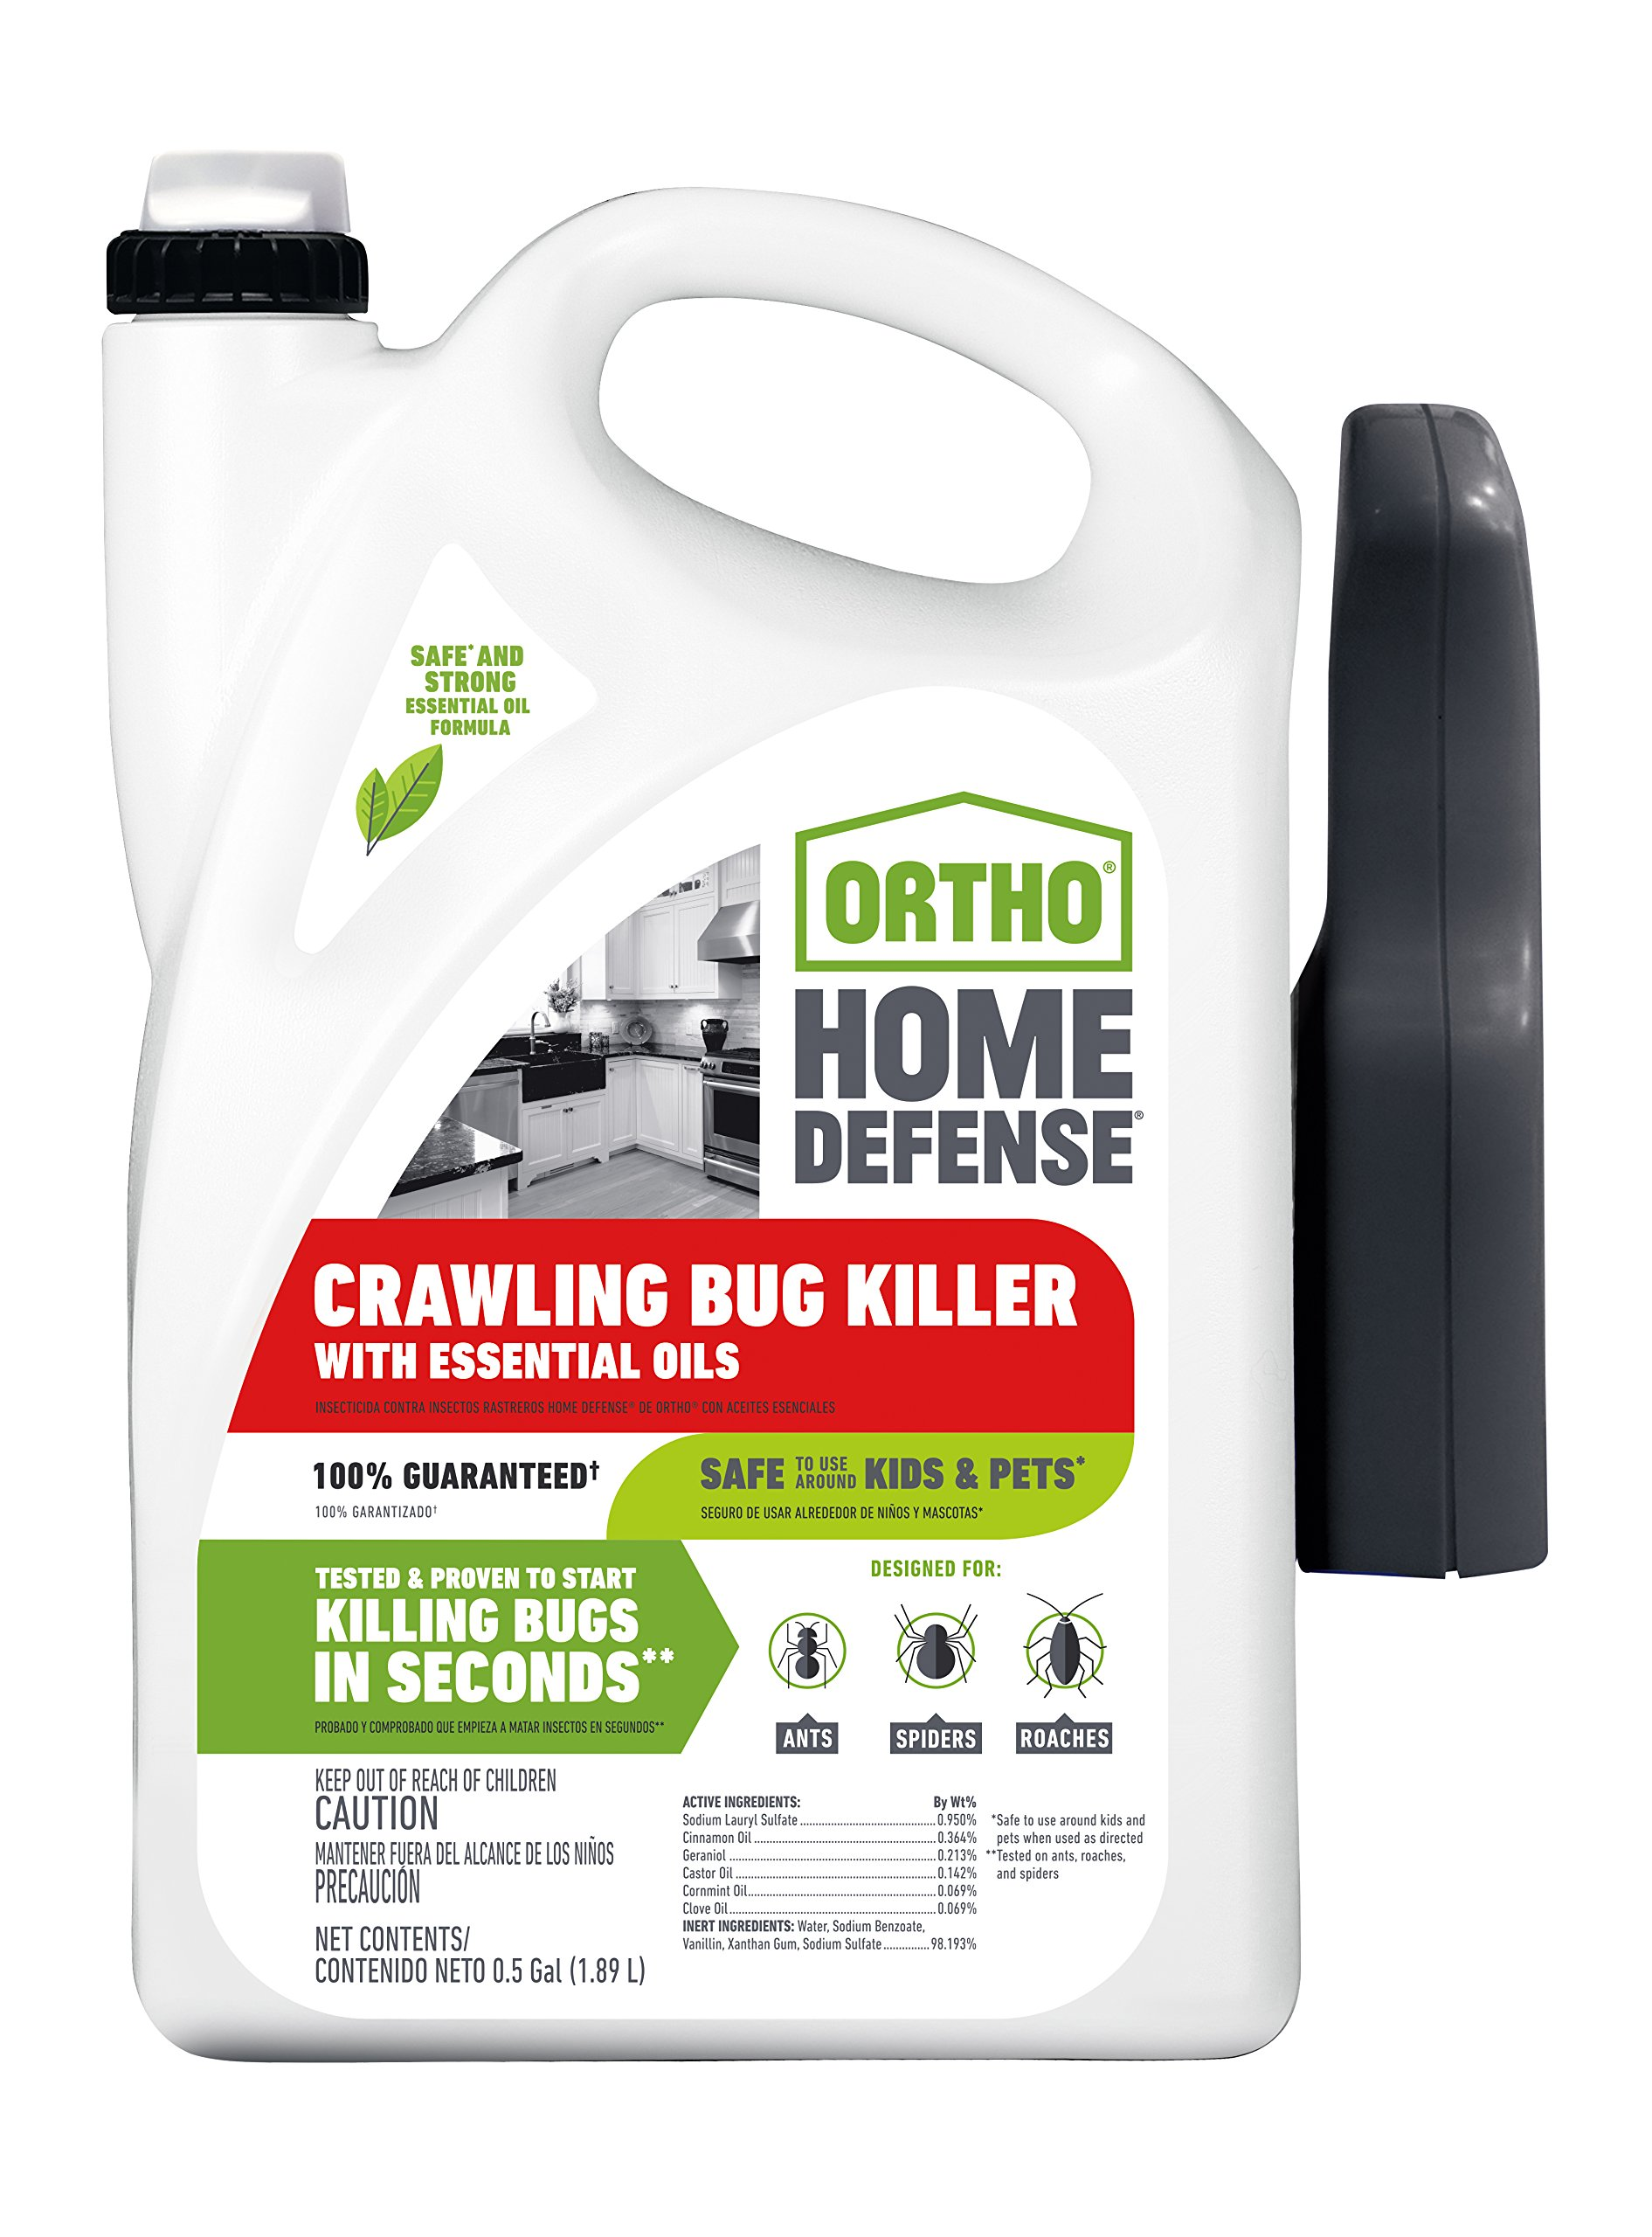 Ortho Home Defense Crawling Bug Killer with Essential Oils RTU Trigger 0.5 GAL by Ortho